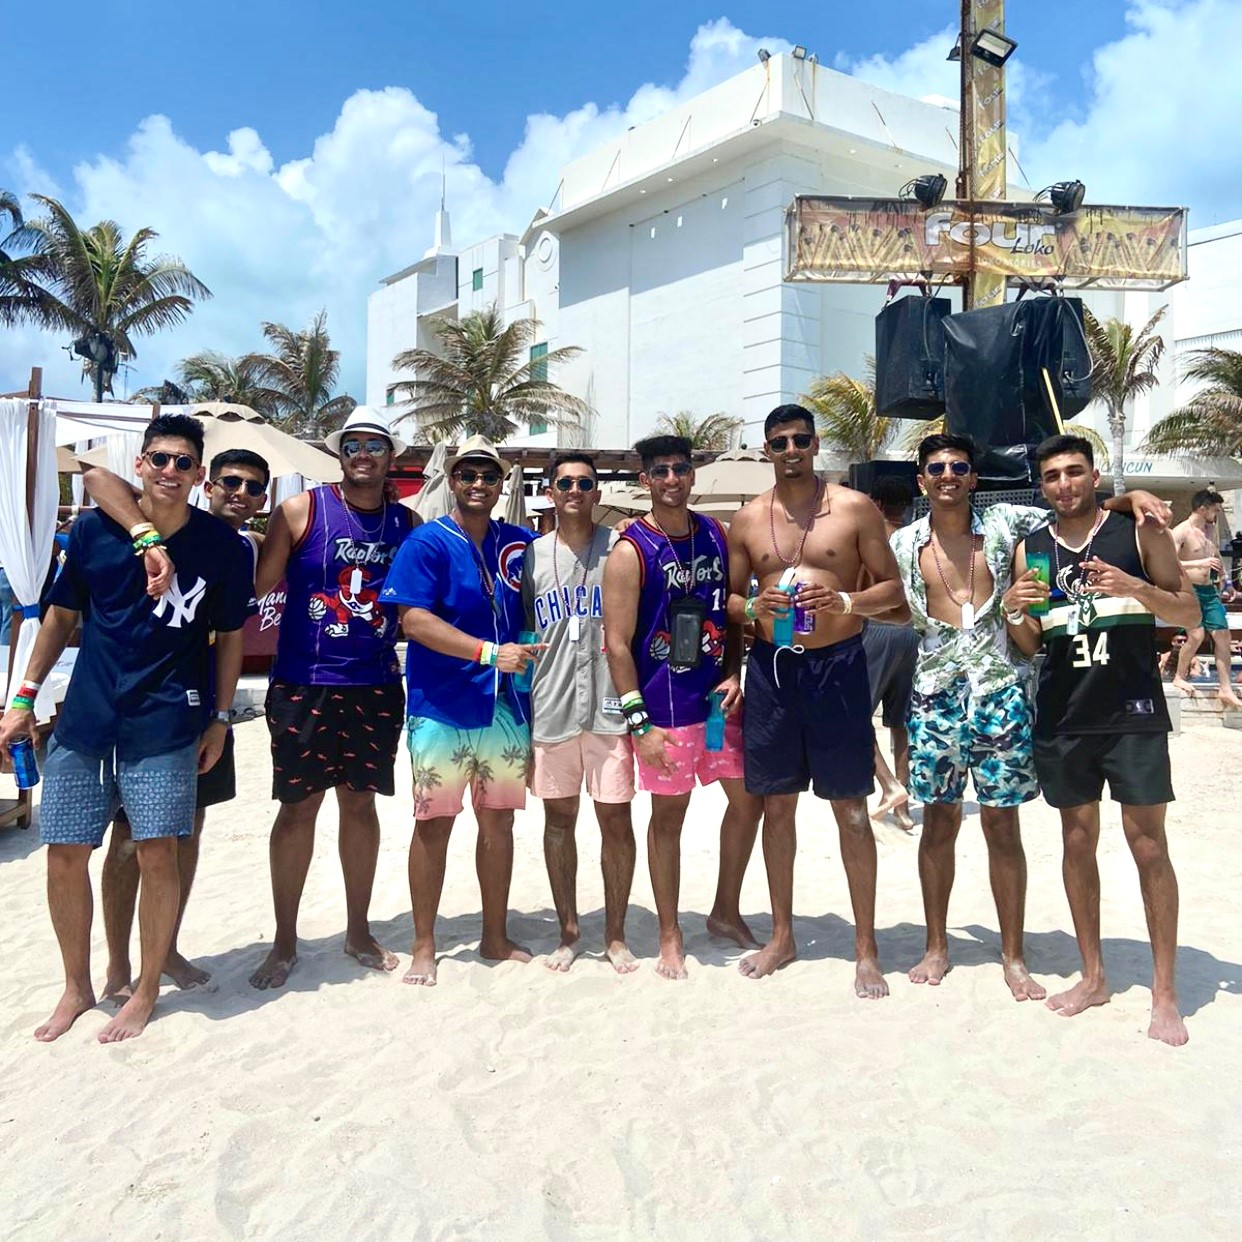 Group of guys on the beach celebrating bachelor party